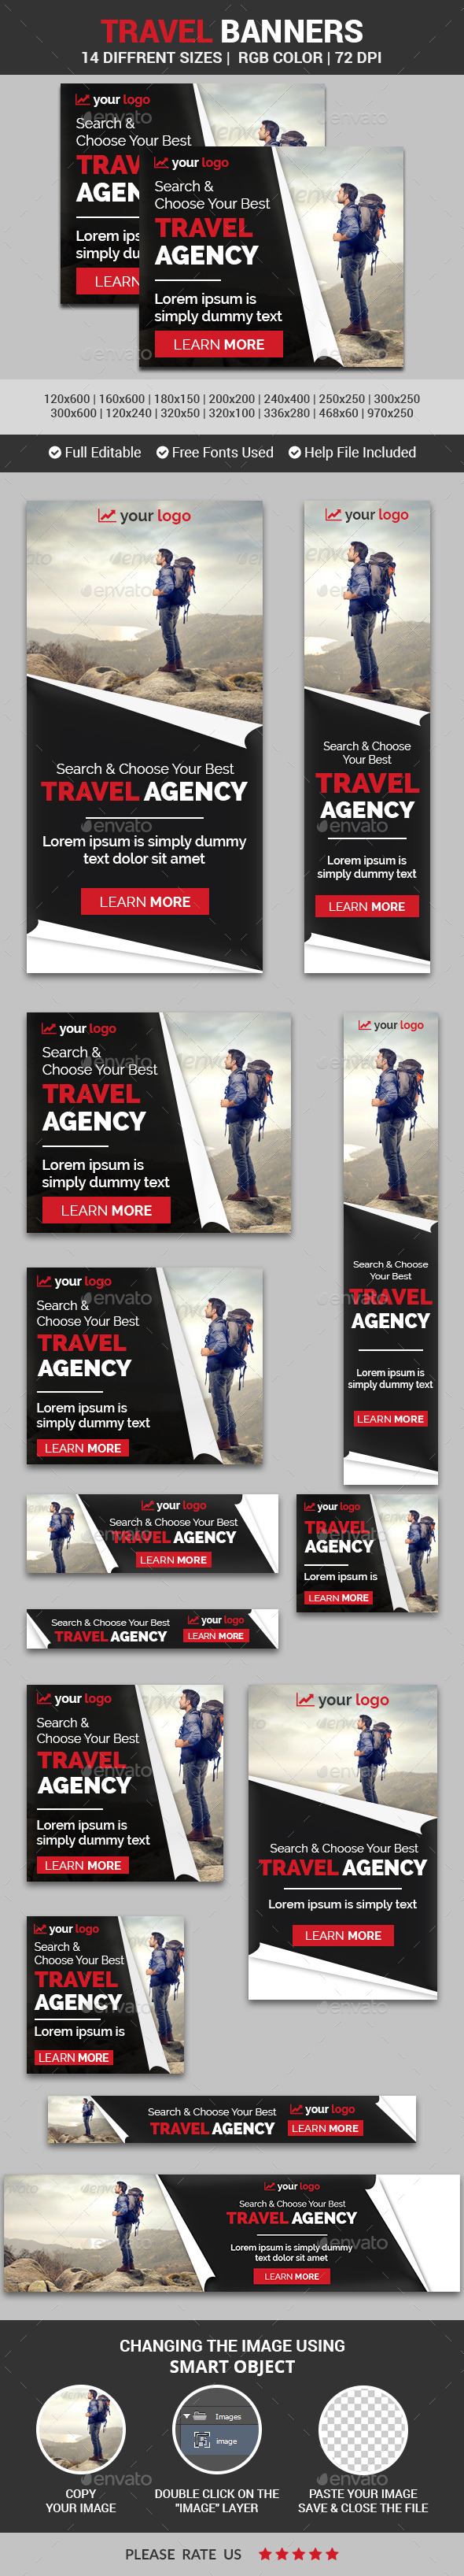 Travel Banners v7 - Banners & Ads Web Elements